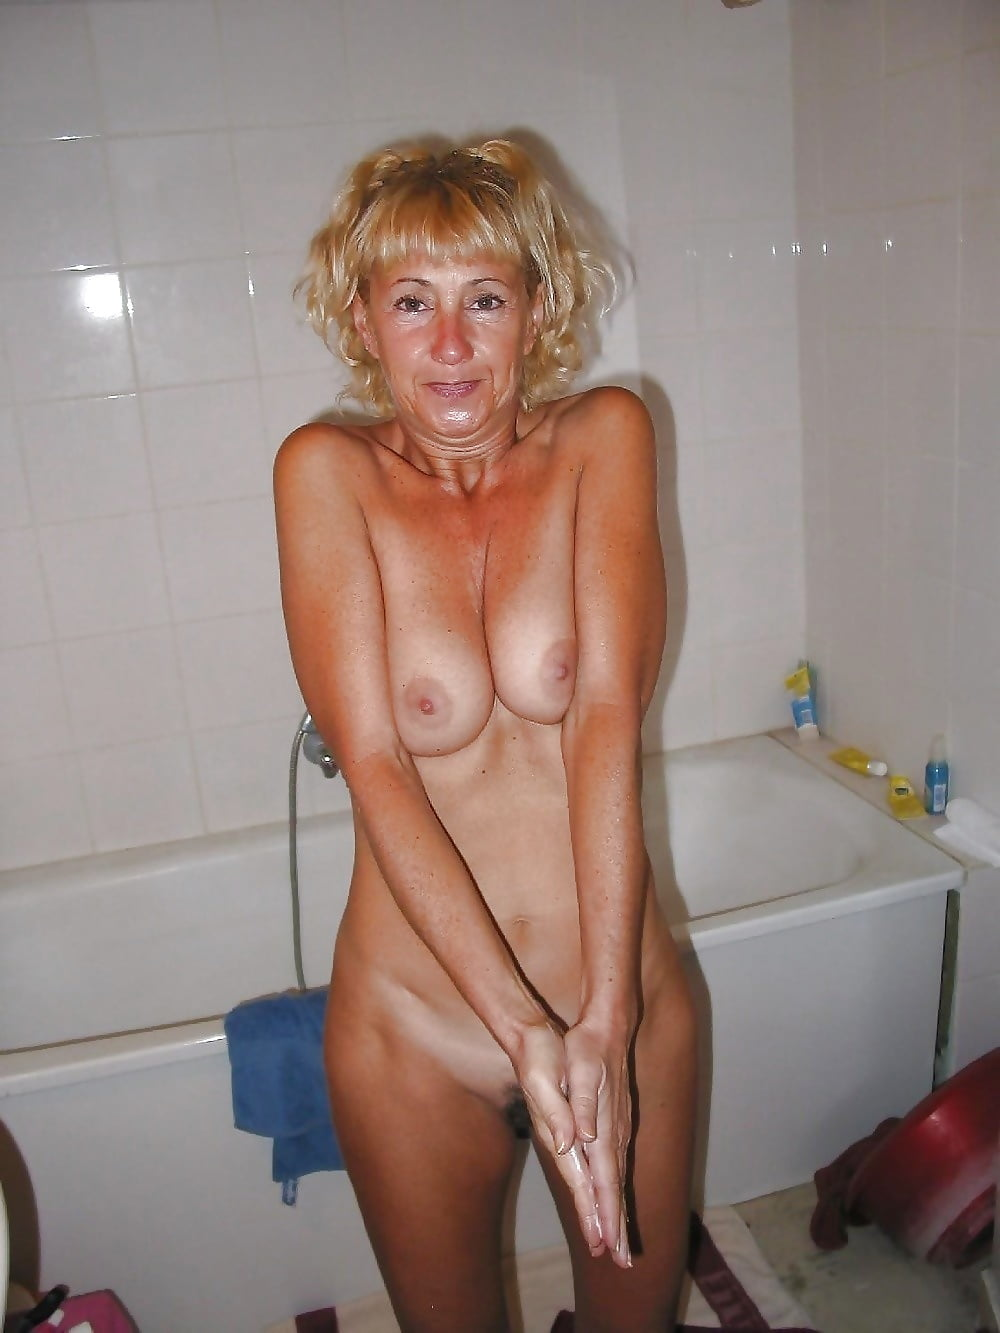 Delightful from amateur checkmymilf milf for mad thought?